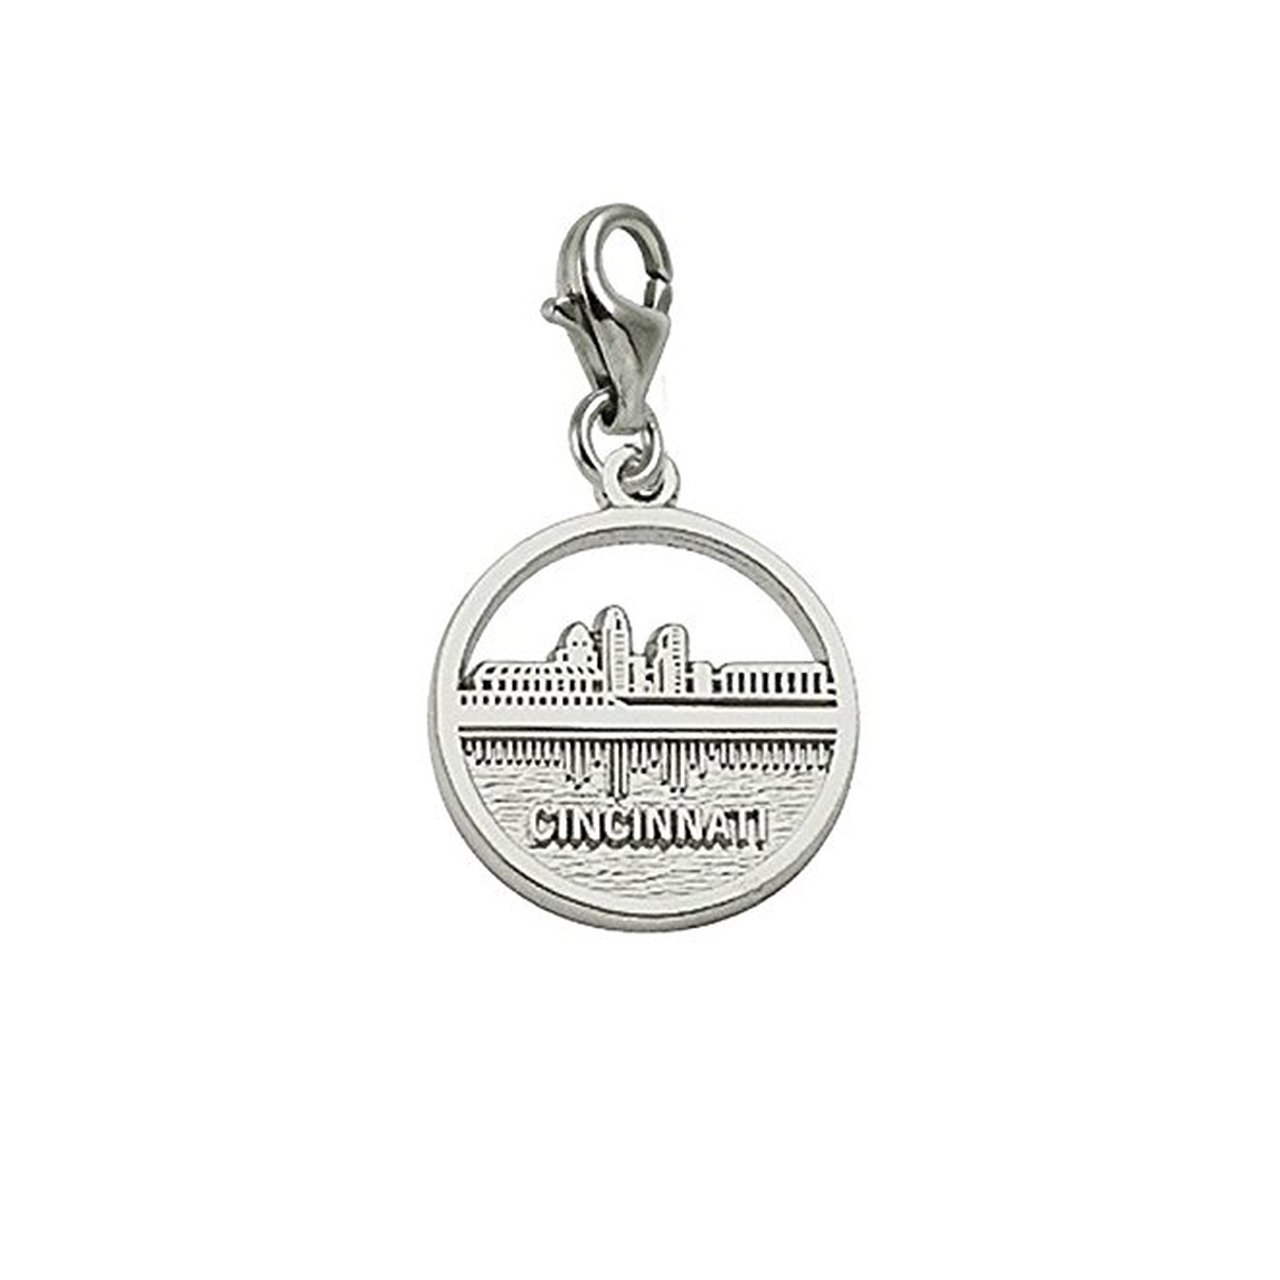 Cincinnati Skyline Charm With Lobster Claw Clasp Charms for Bracelets and Necklaces